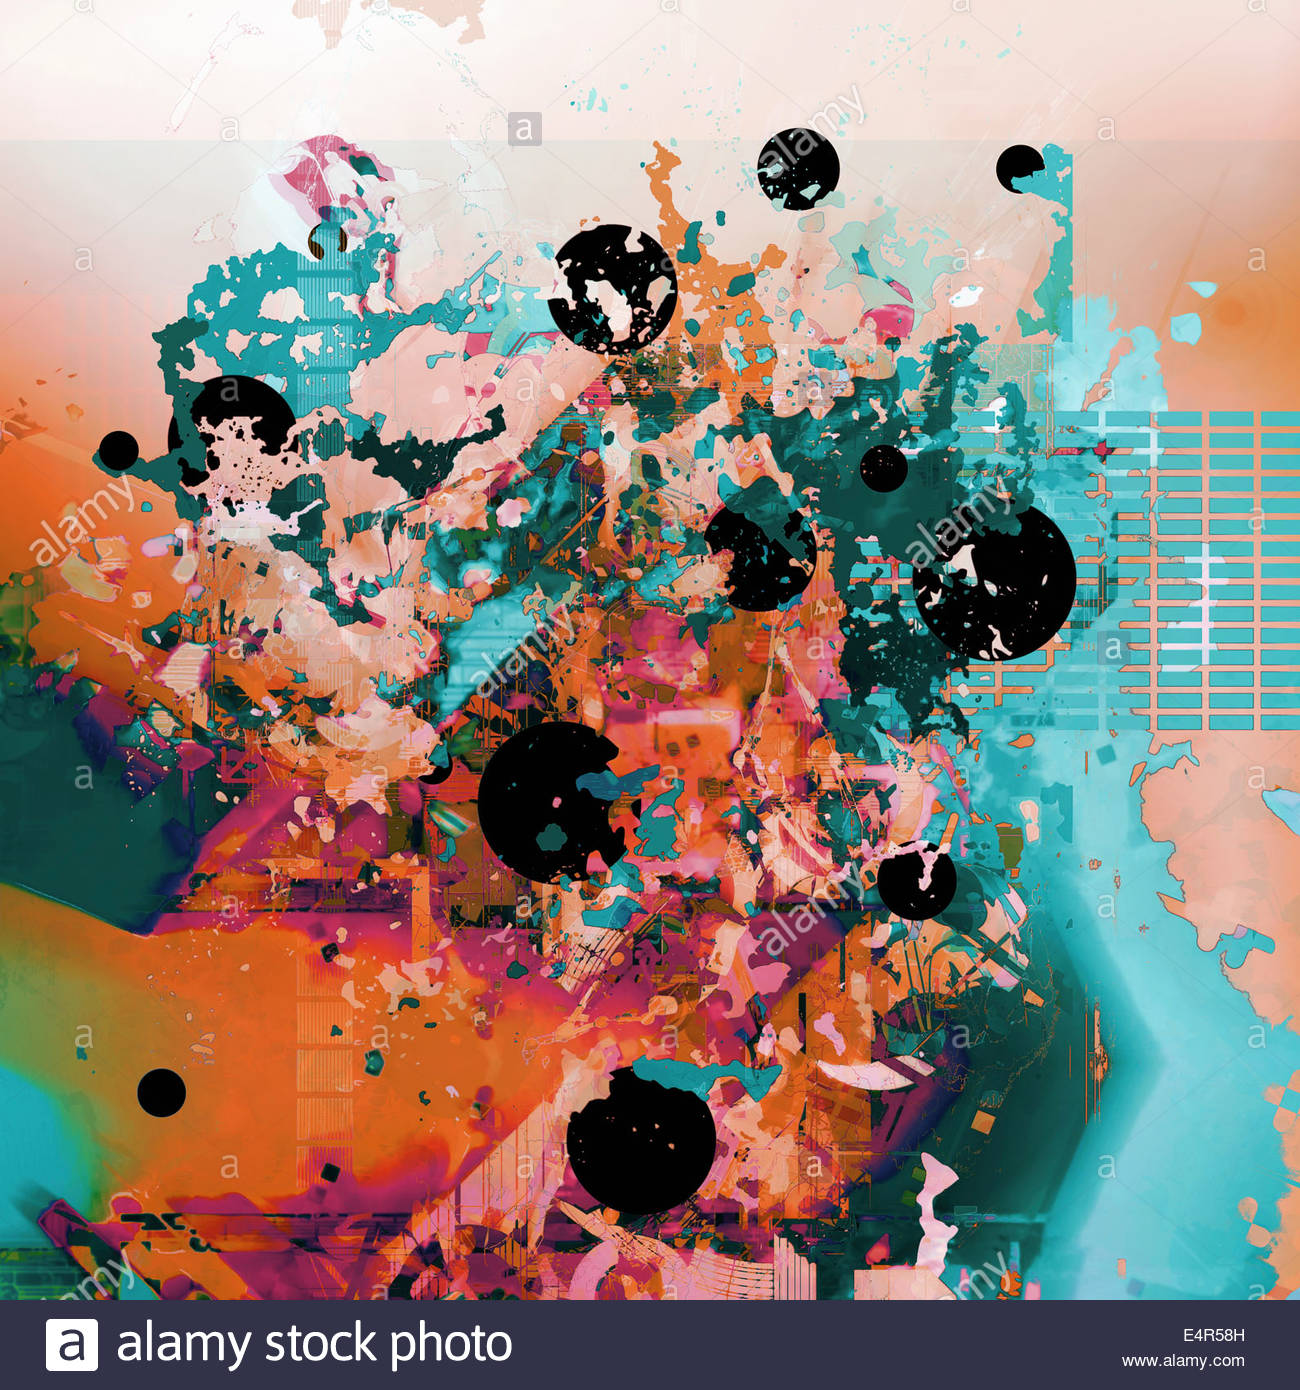 Abstract backgrounds pattern of splatters and circles - Stock Image